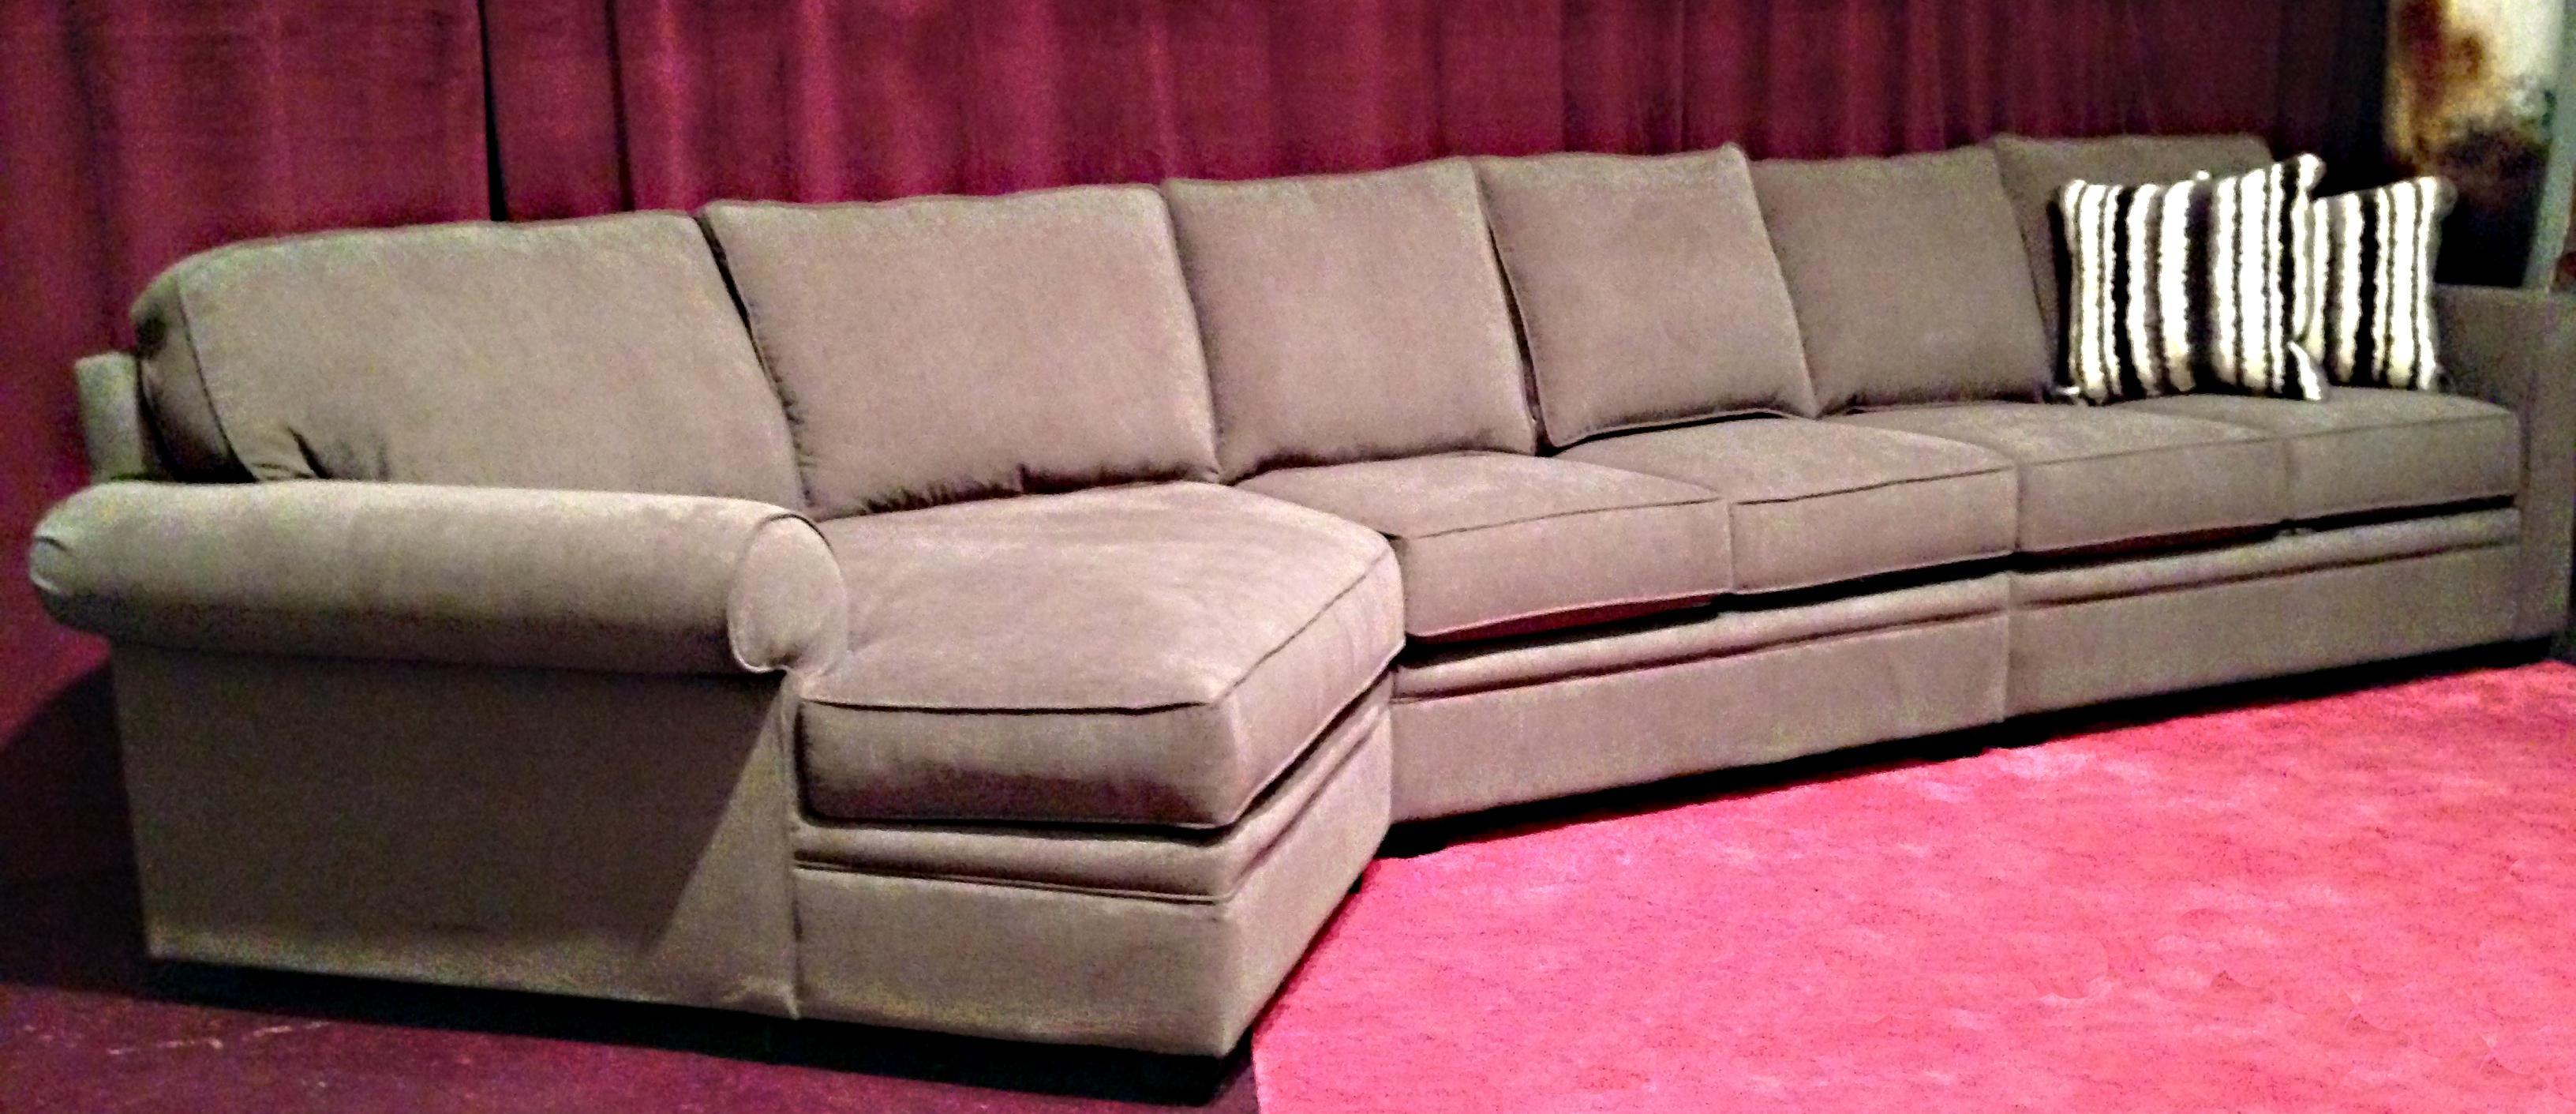 Sofas Center : Cu Left Cuddler Sectional Sofa Bassett Home Throughout Bassett Cuddler Sectional (View 12 of 15)